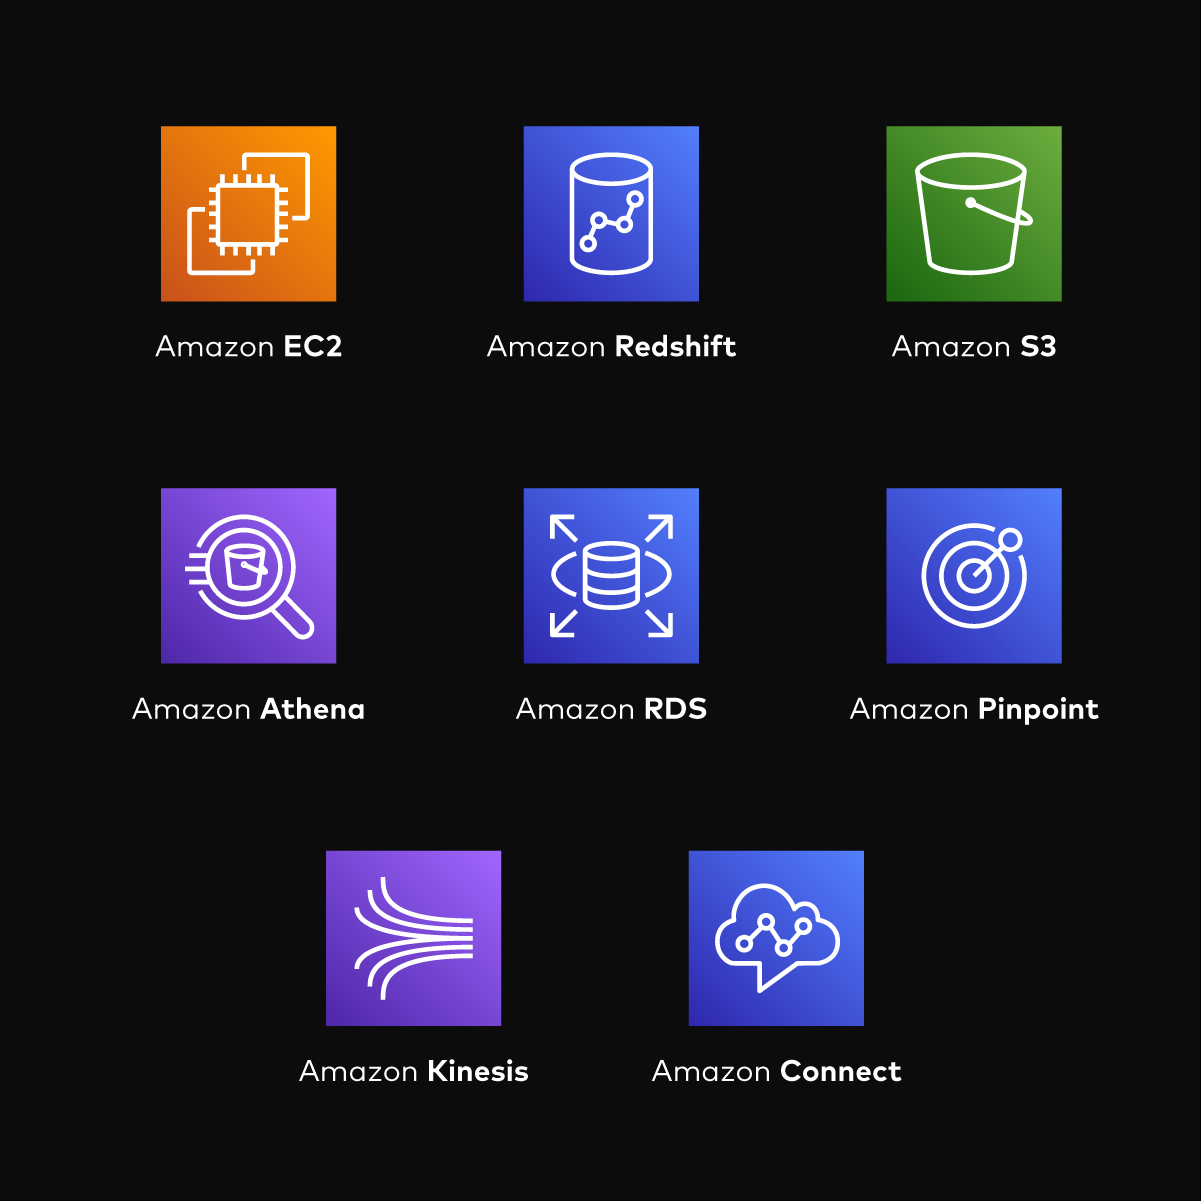 Image of Aws icons 1200x1200px